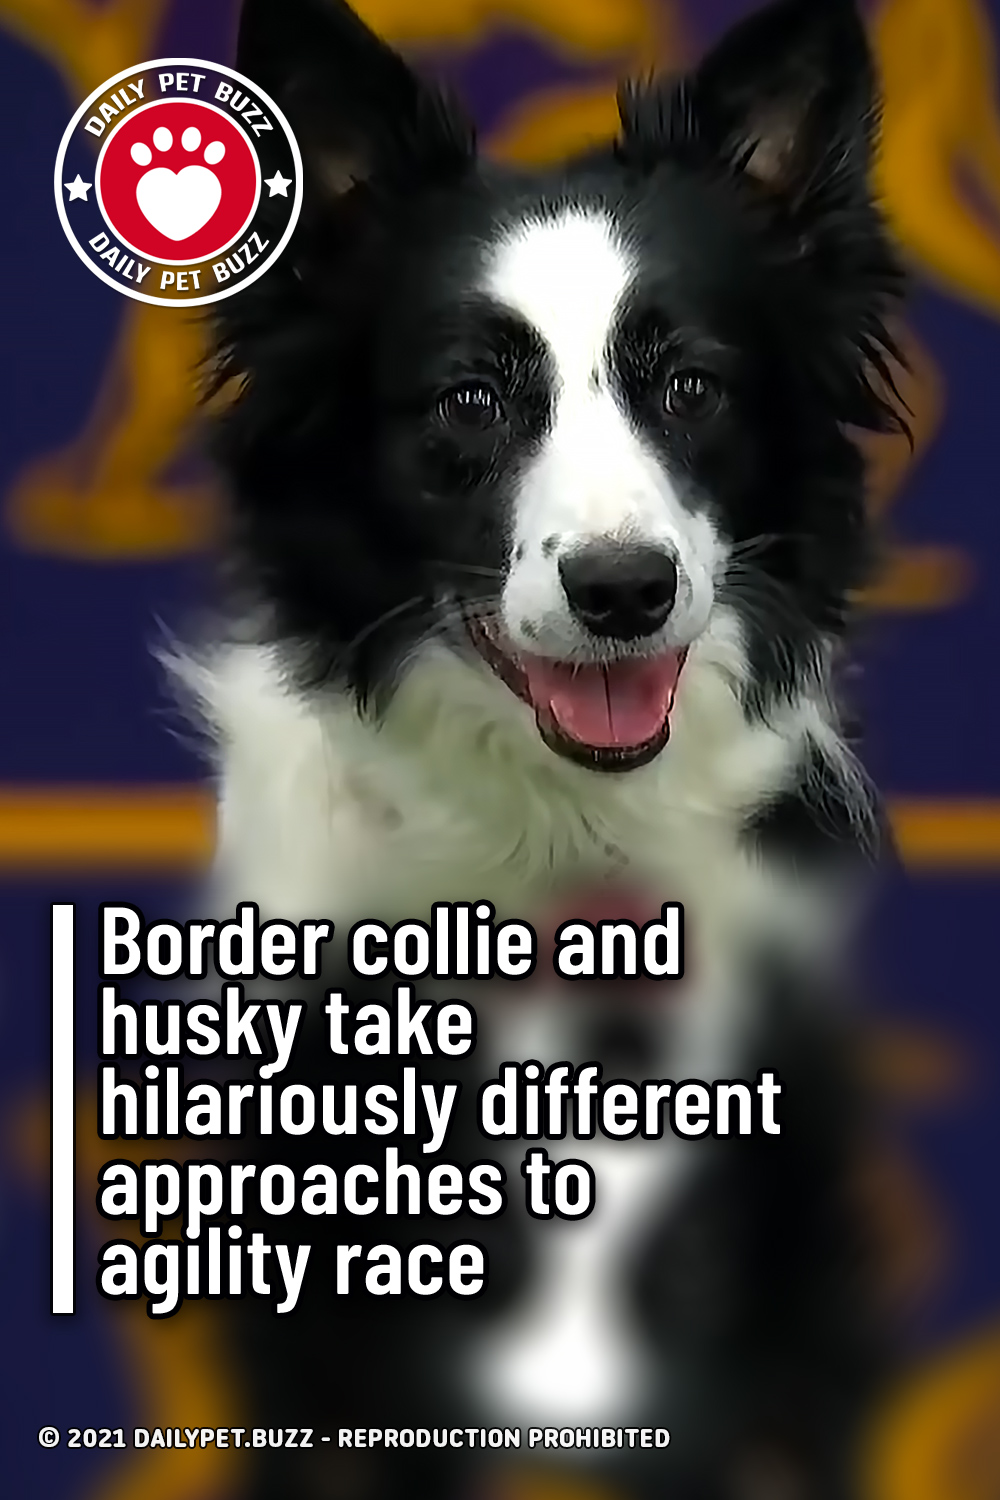 Border collie and husky take hilariously different approaches to agility race